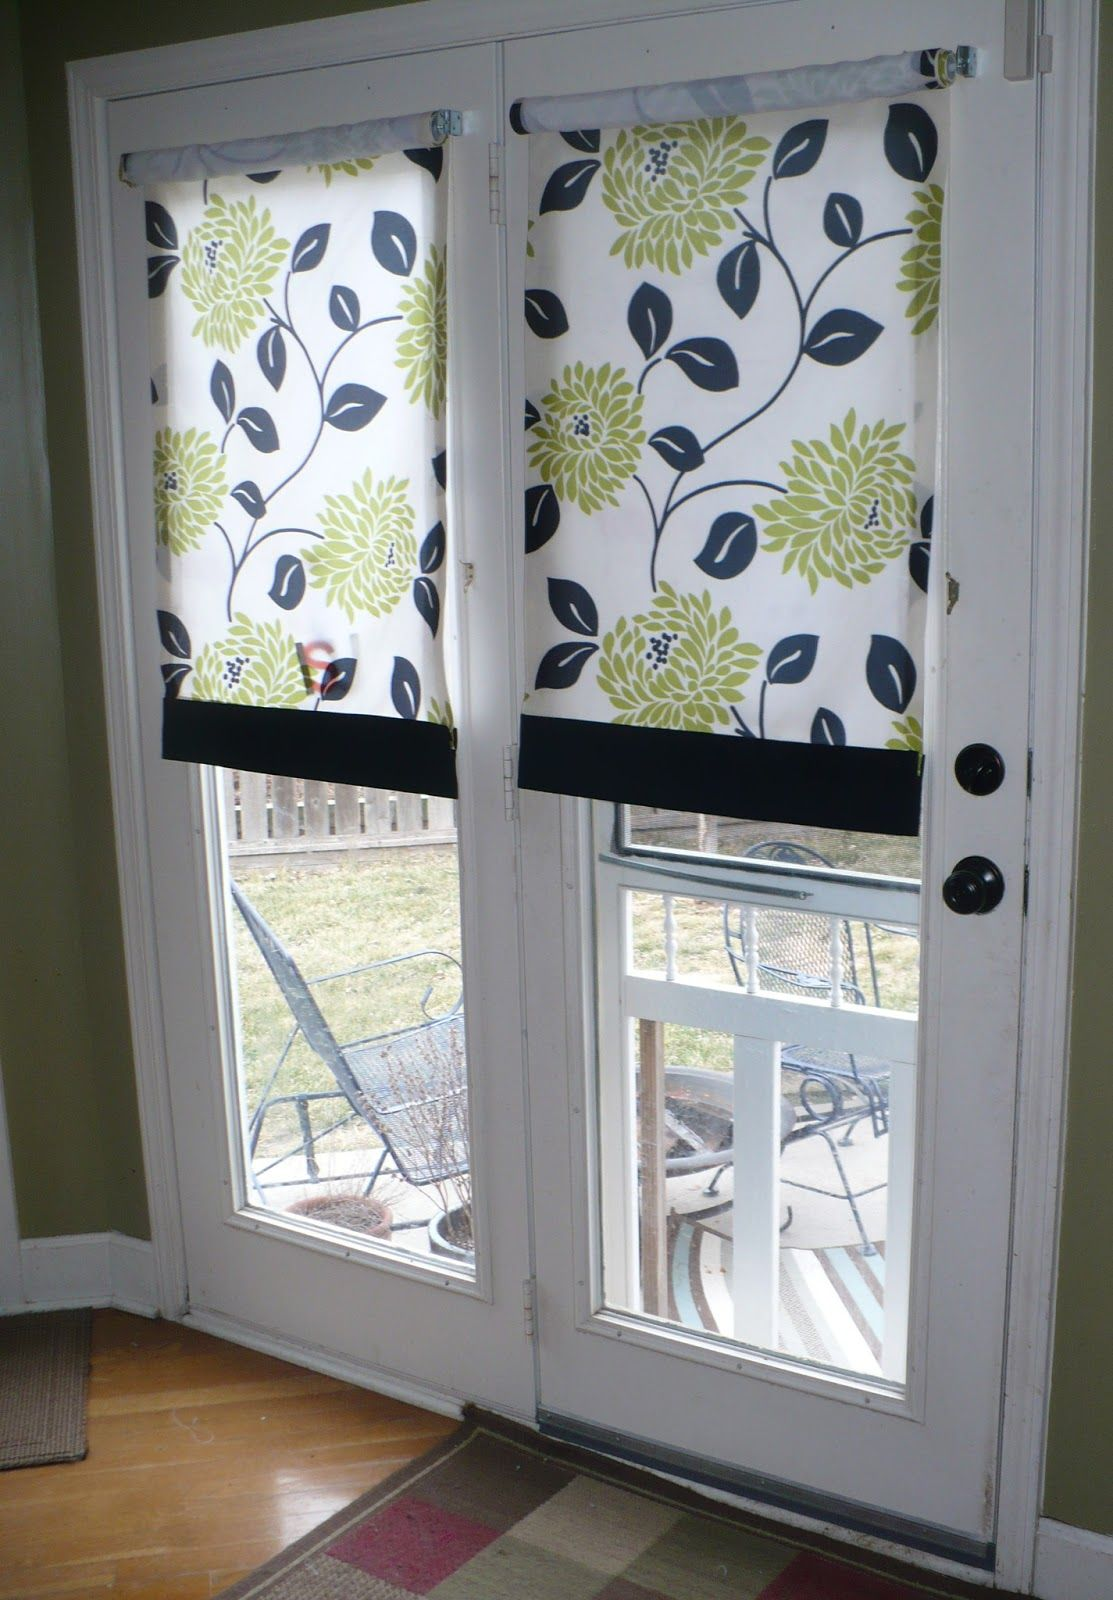 diy door curtains |  to creative thriftiness: diy roll up